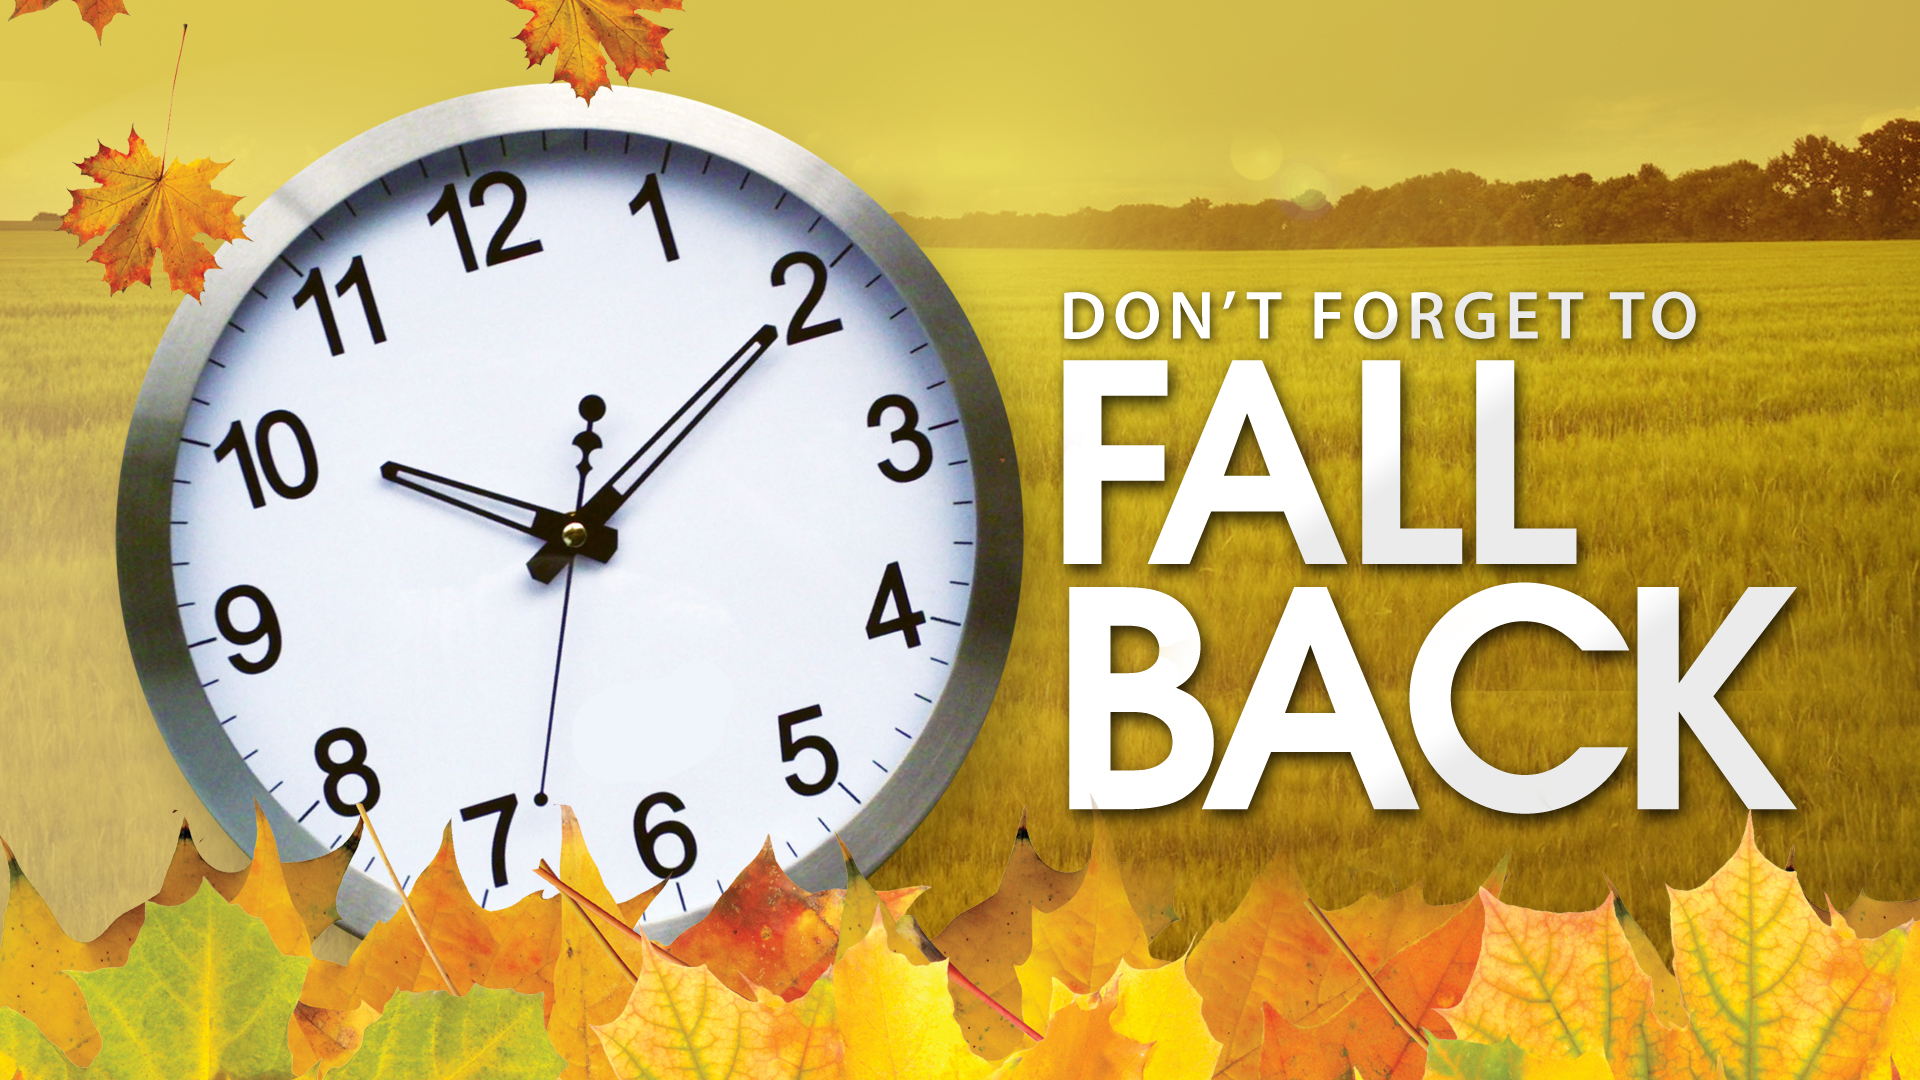 Daylight savings clipart november 5. Fun facts about